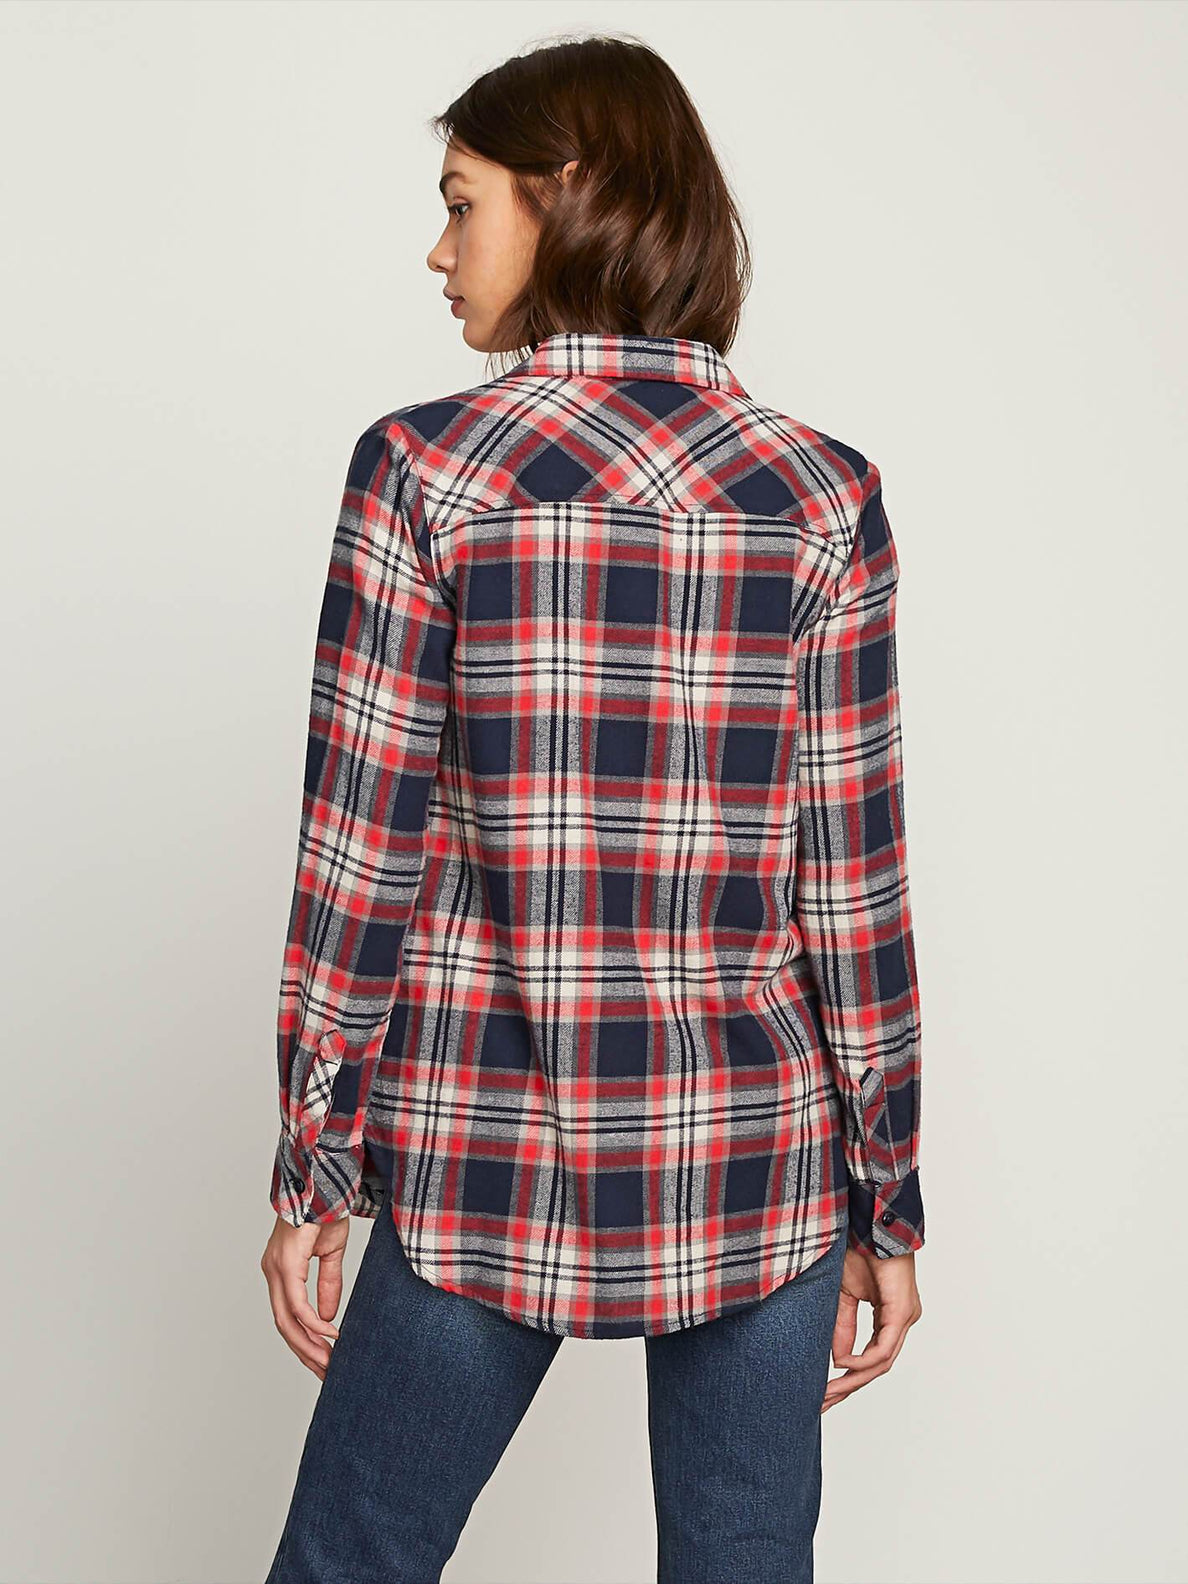 Getting Rad Plaid Long Sleeve Flannel - Sea Navy